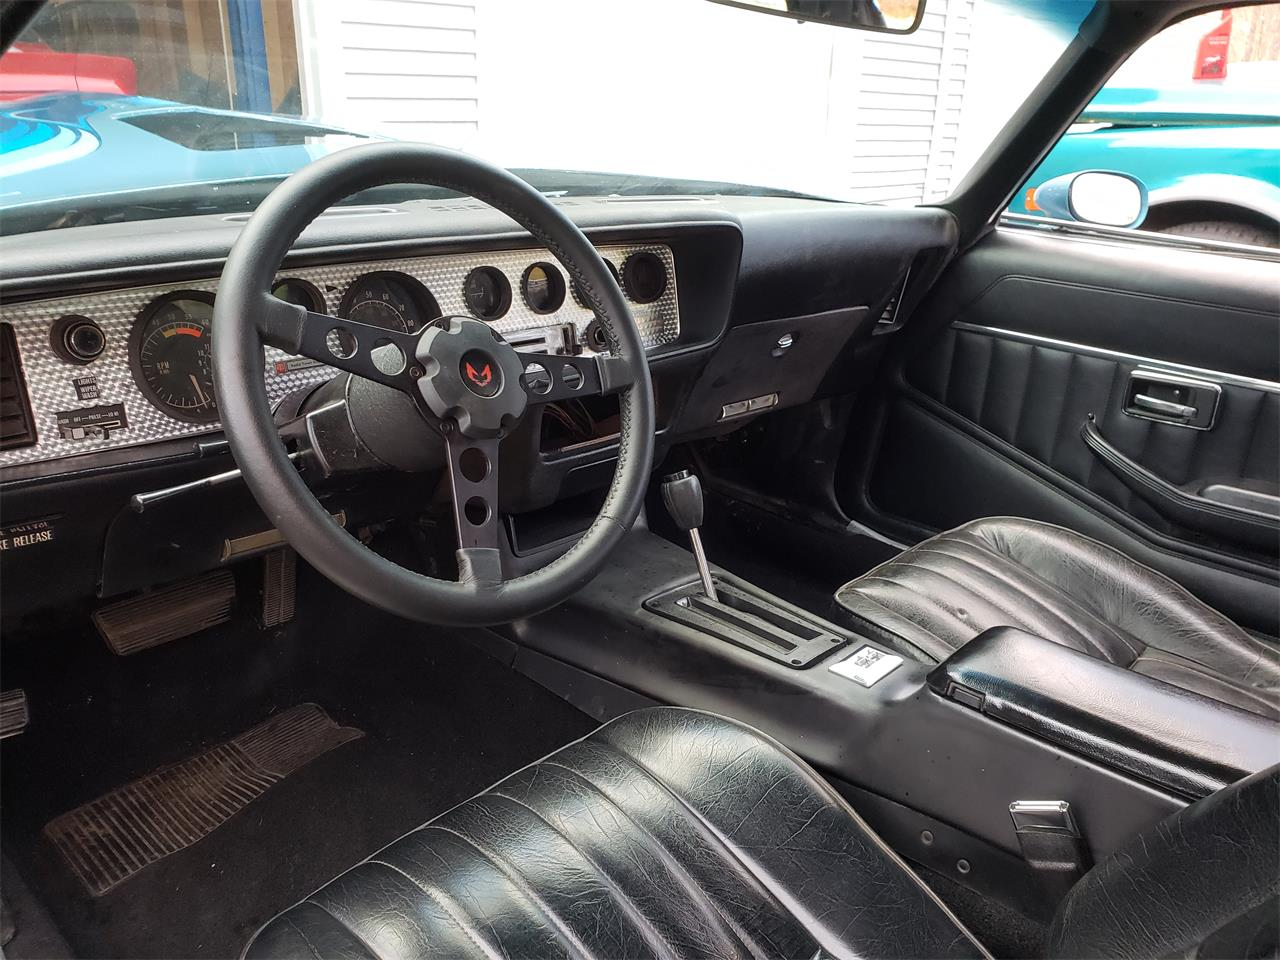 1979 Pontiac Firebird Trans Am for sale in Baltic, CT – photo 6